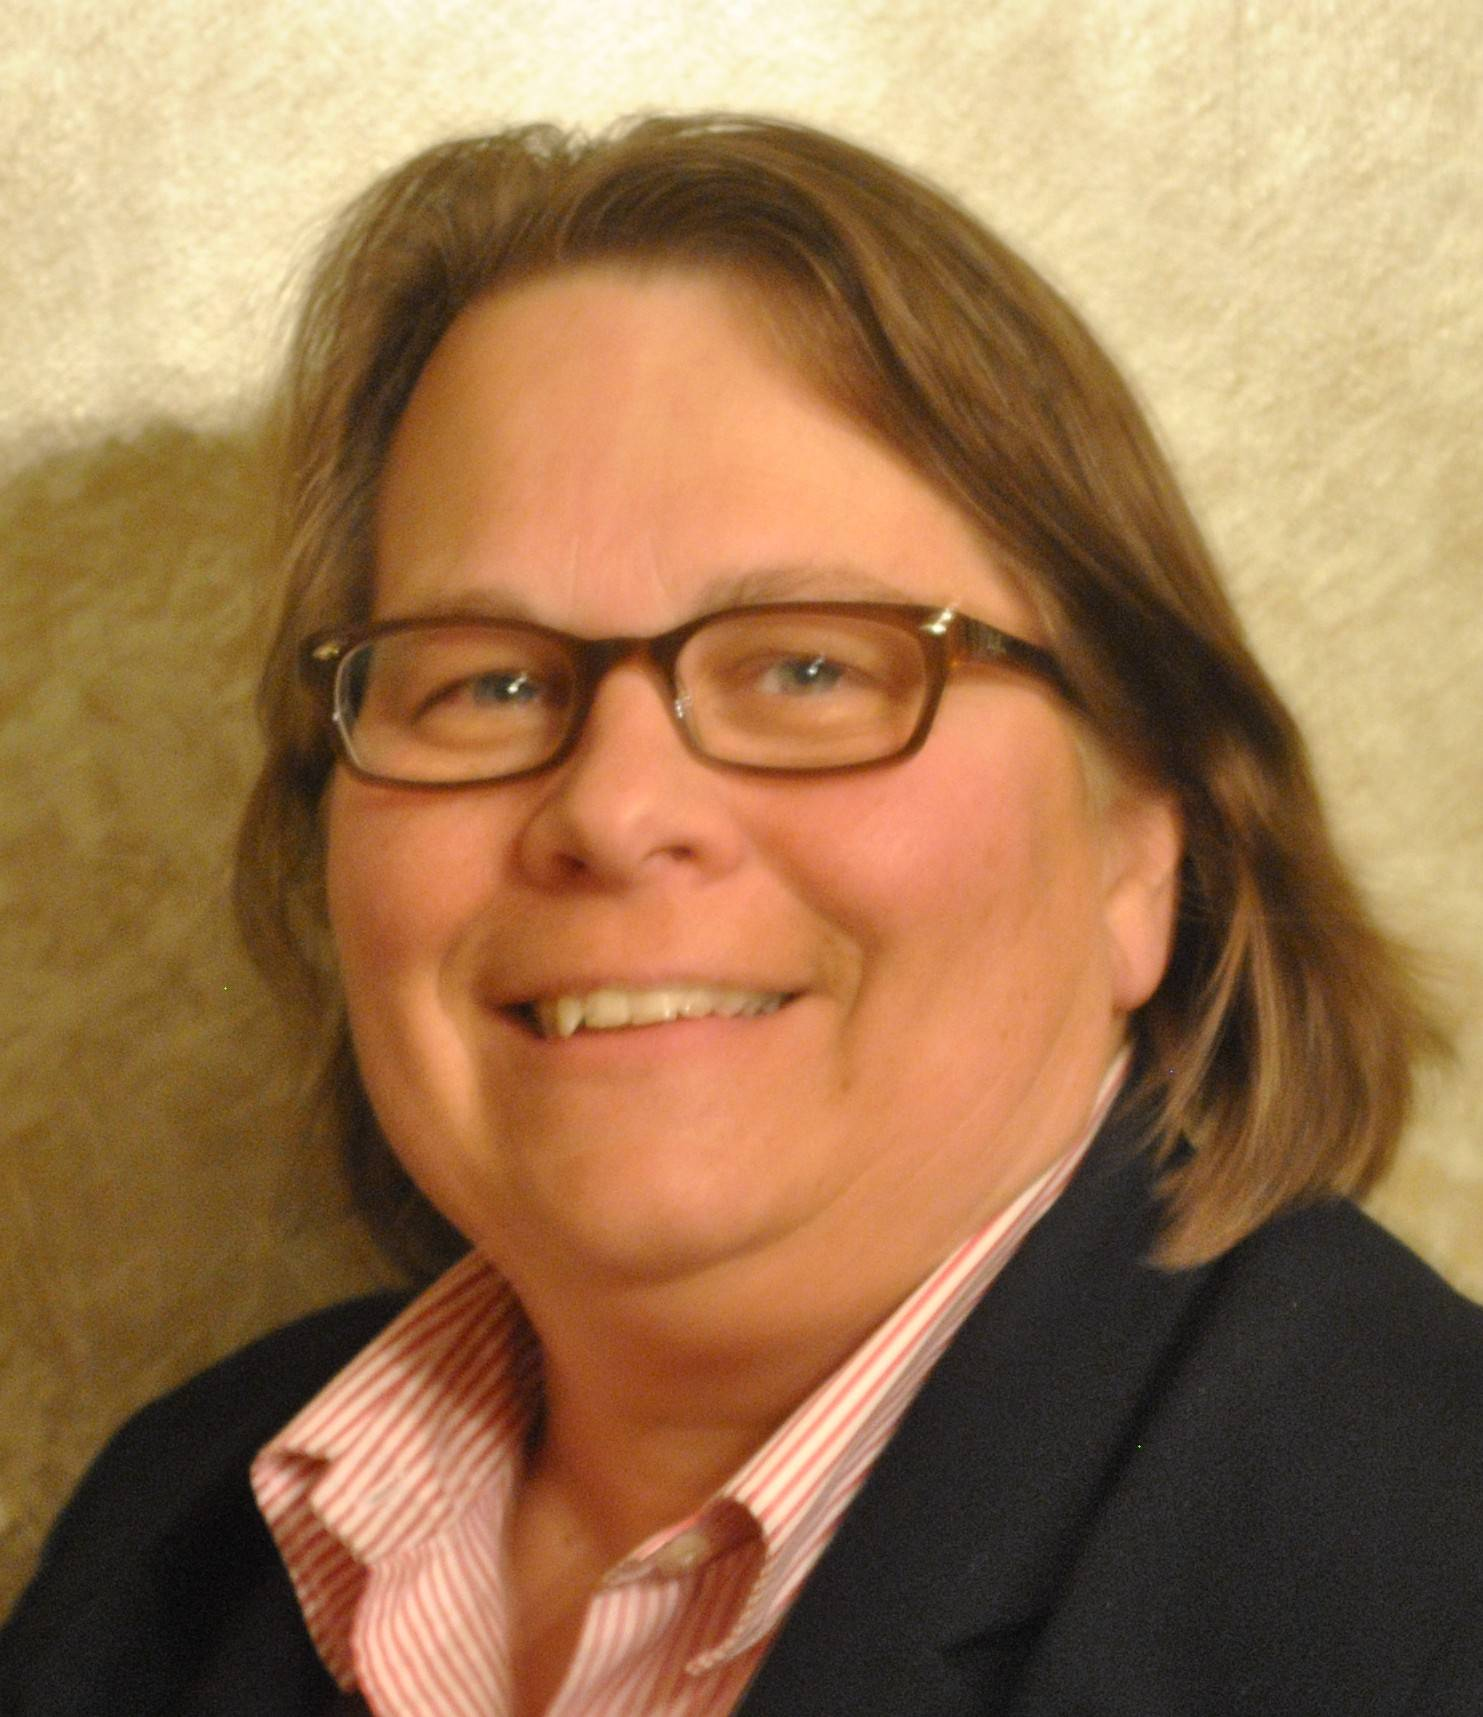 Wendy Schilling, running for Libertyville District 70 School Board (4-year Terms)